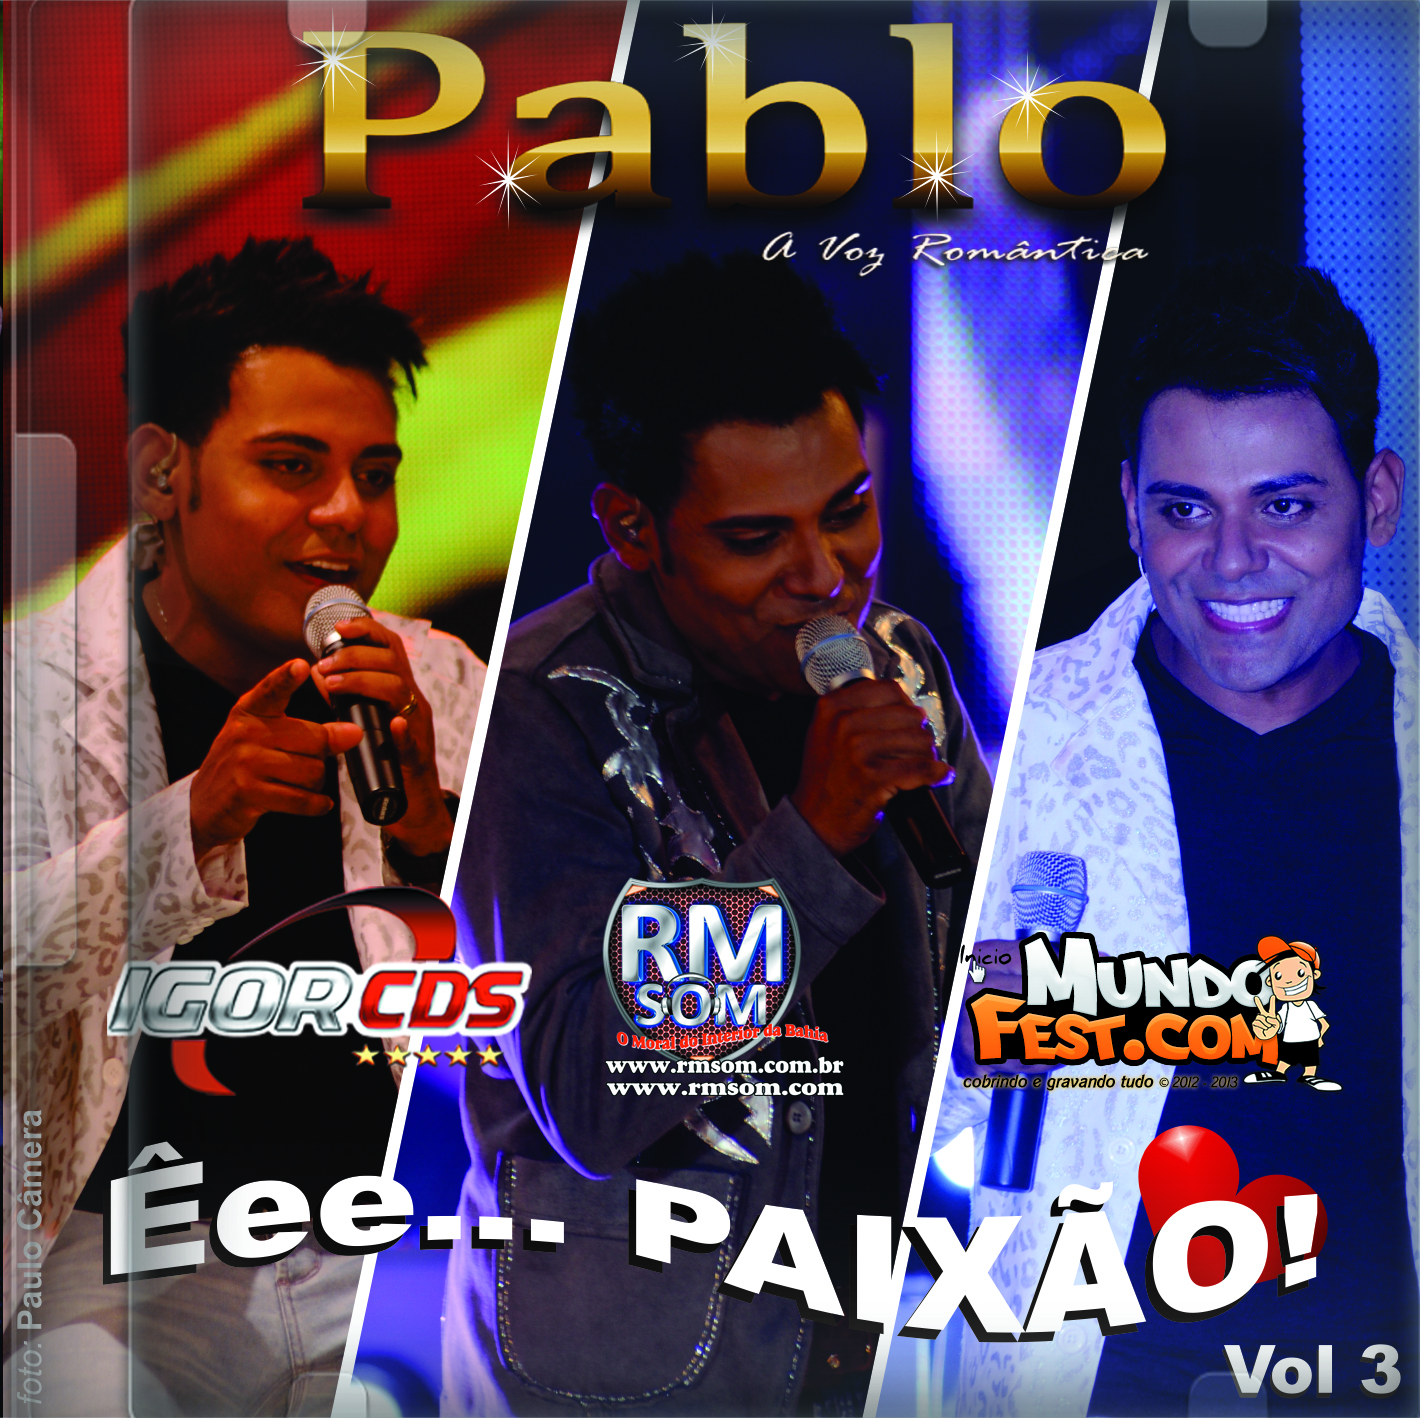 [ CD ] Pablo do Arrocha - VOL 3 CD 2013